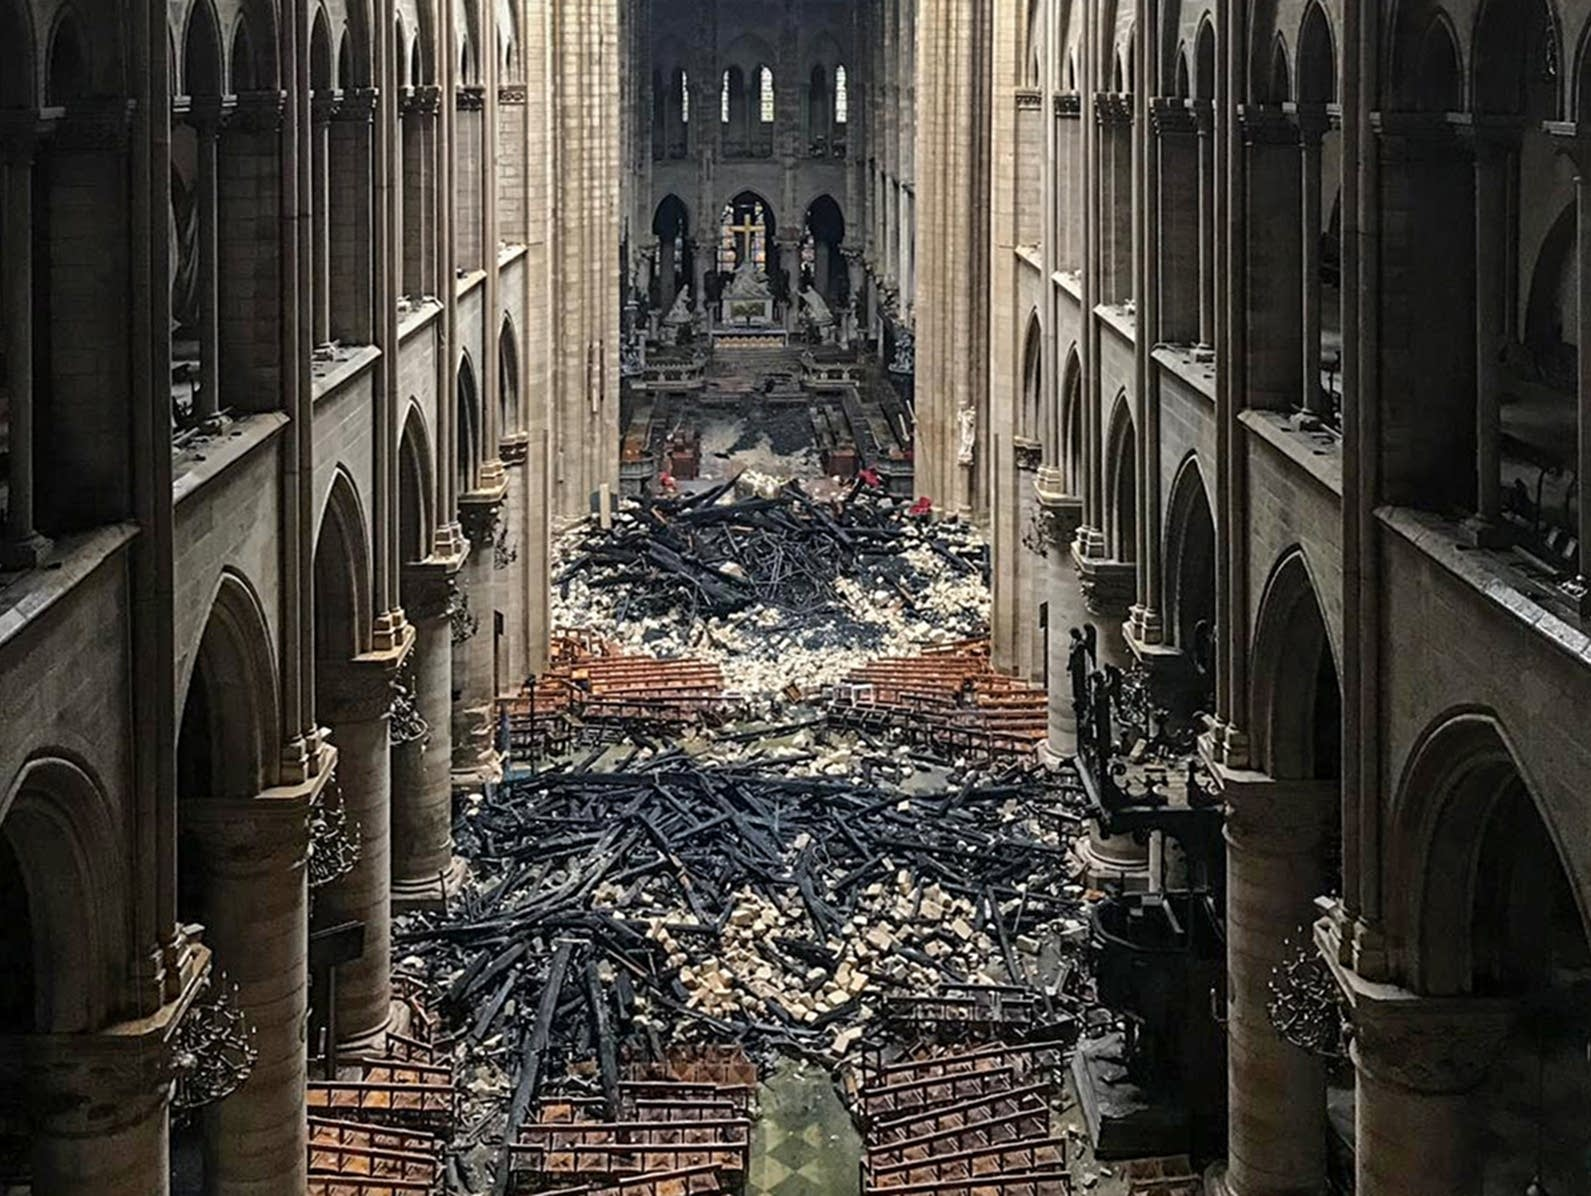 An interior view of the Notre Dame in Paris in the aftermath of a fire.